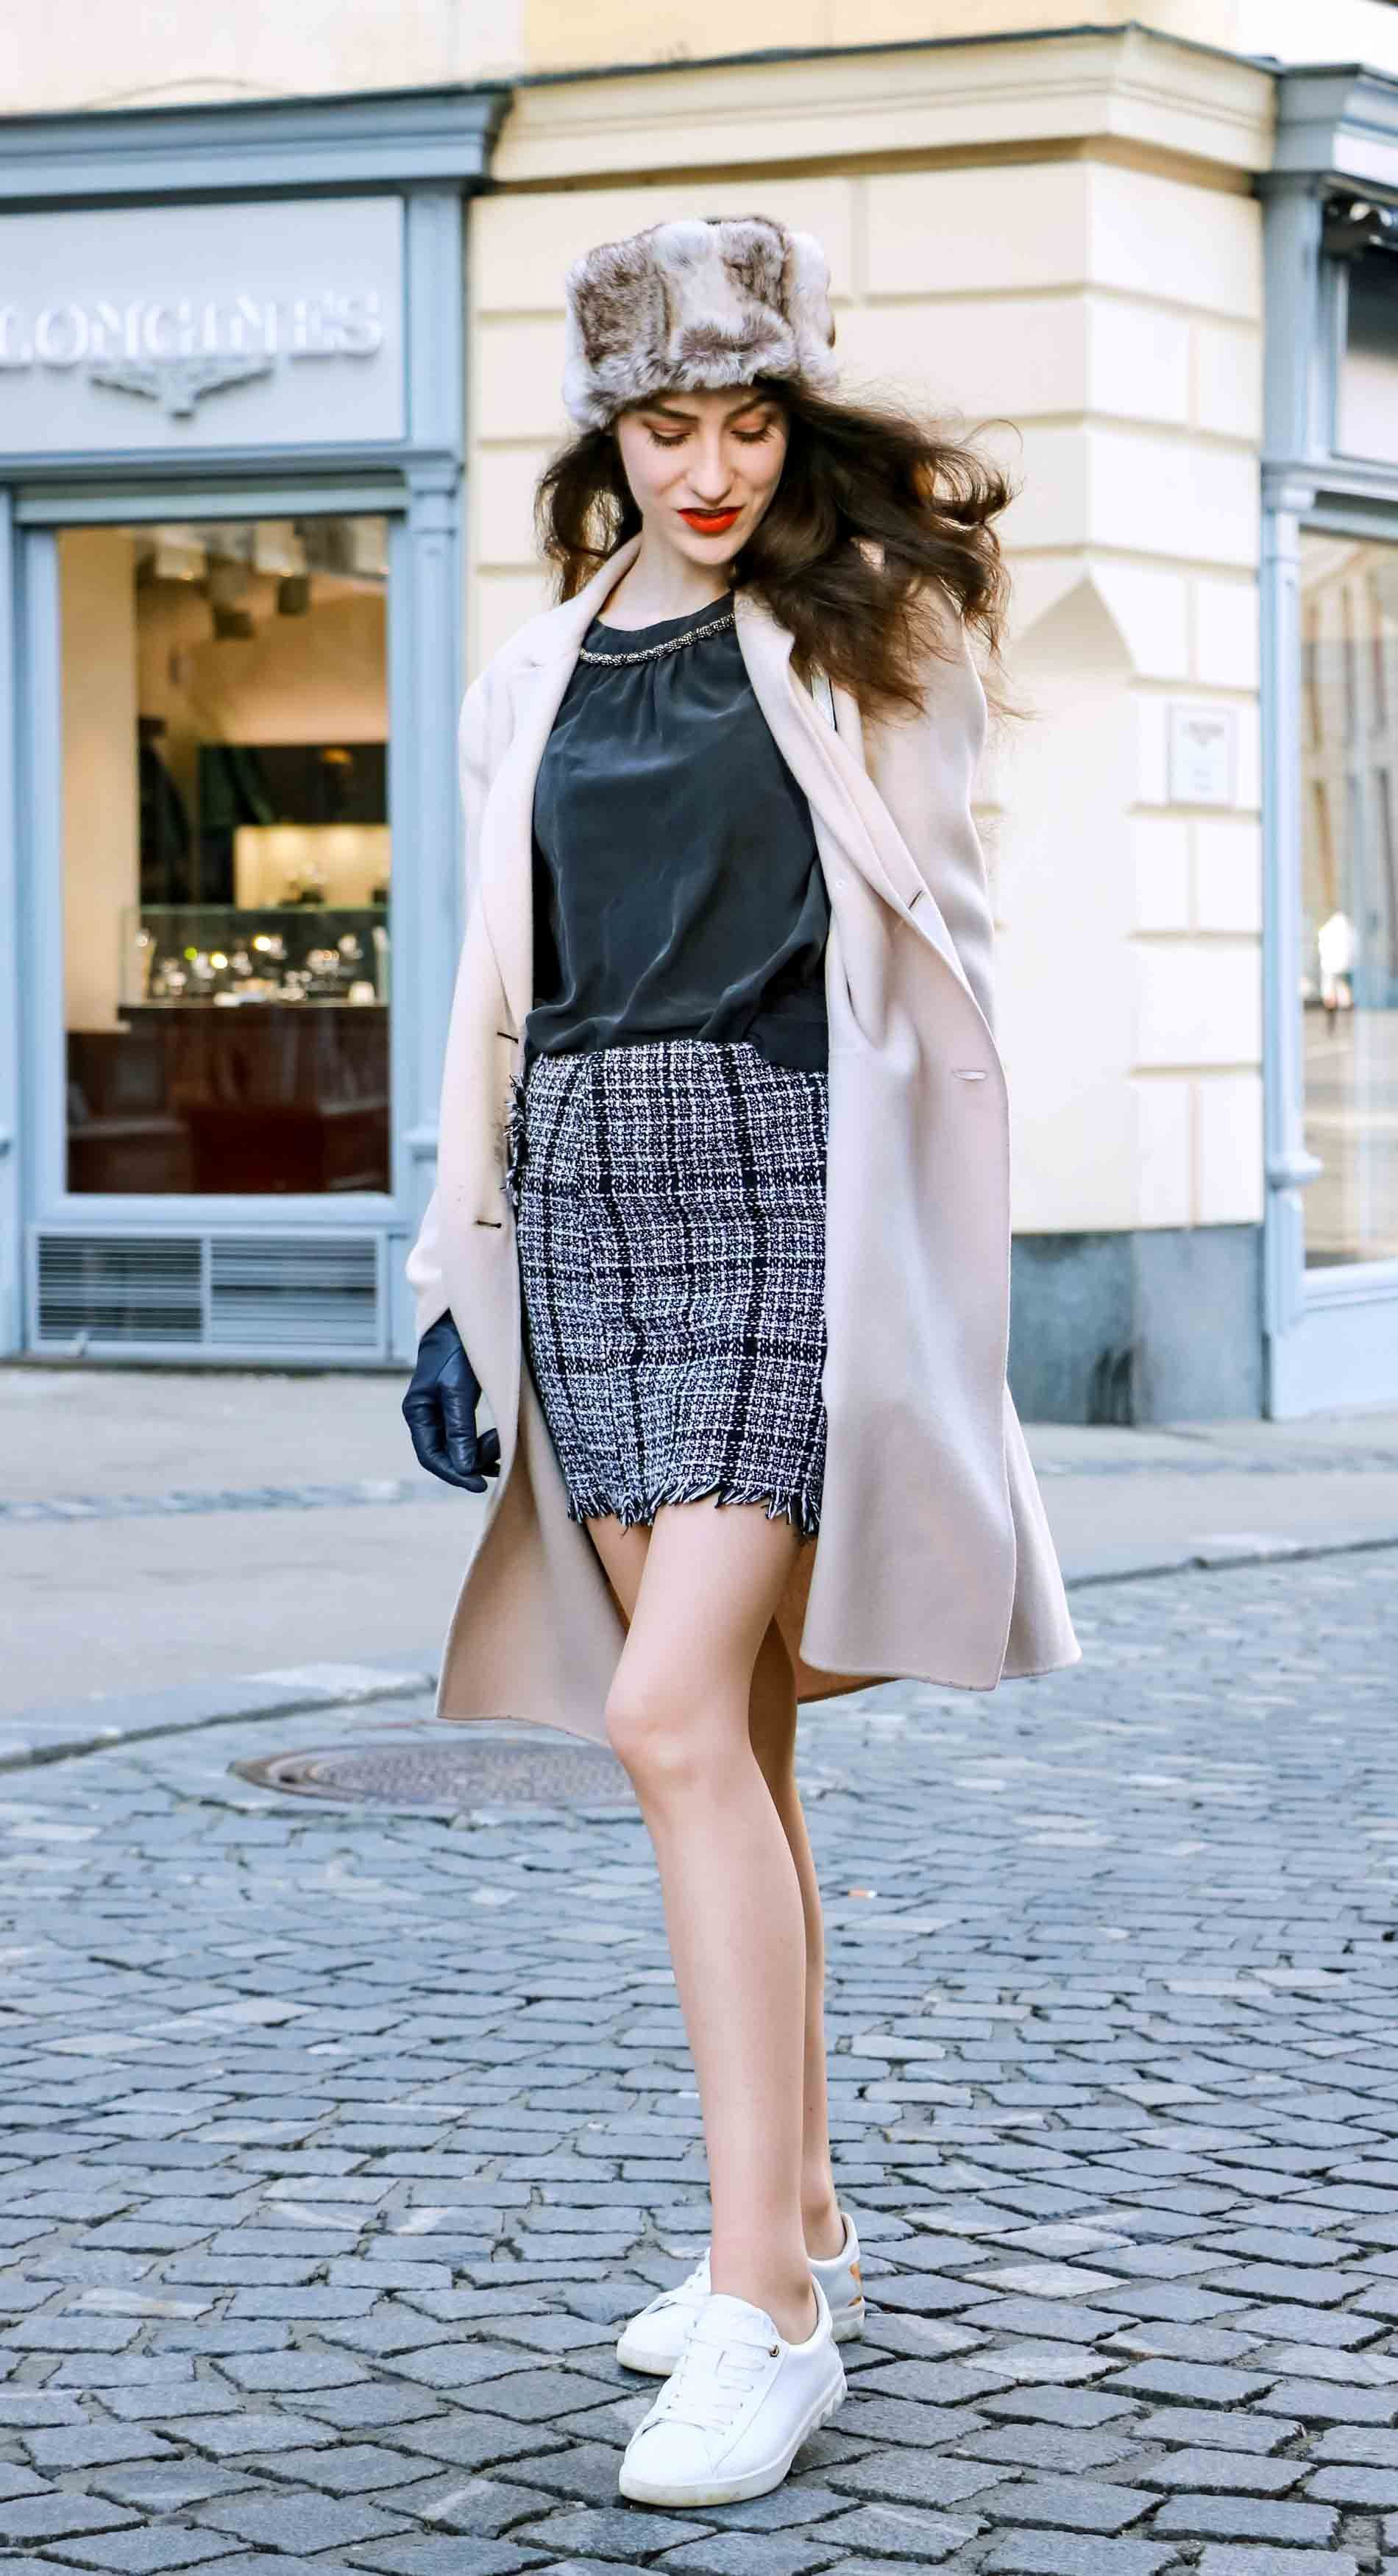 Brunette from Wall Street: Blog 64